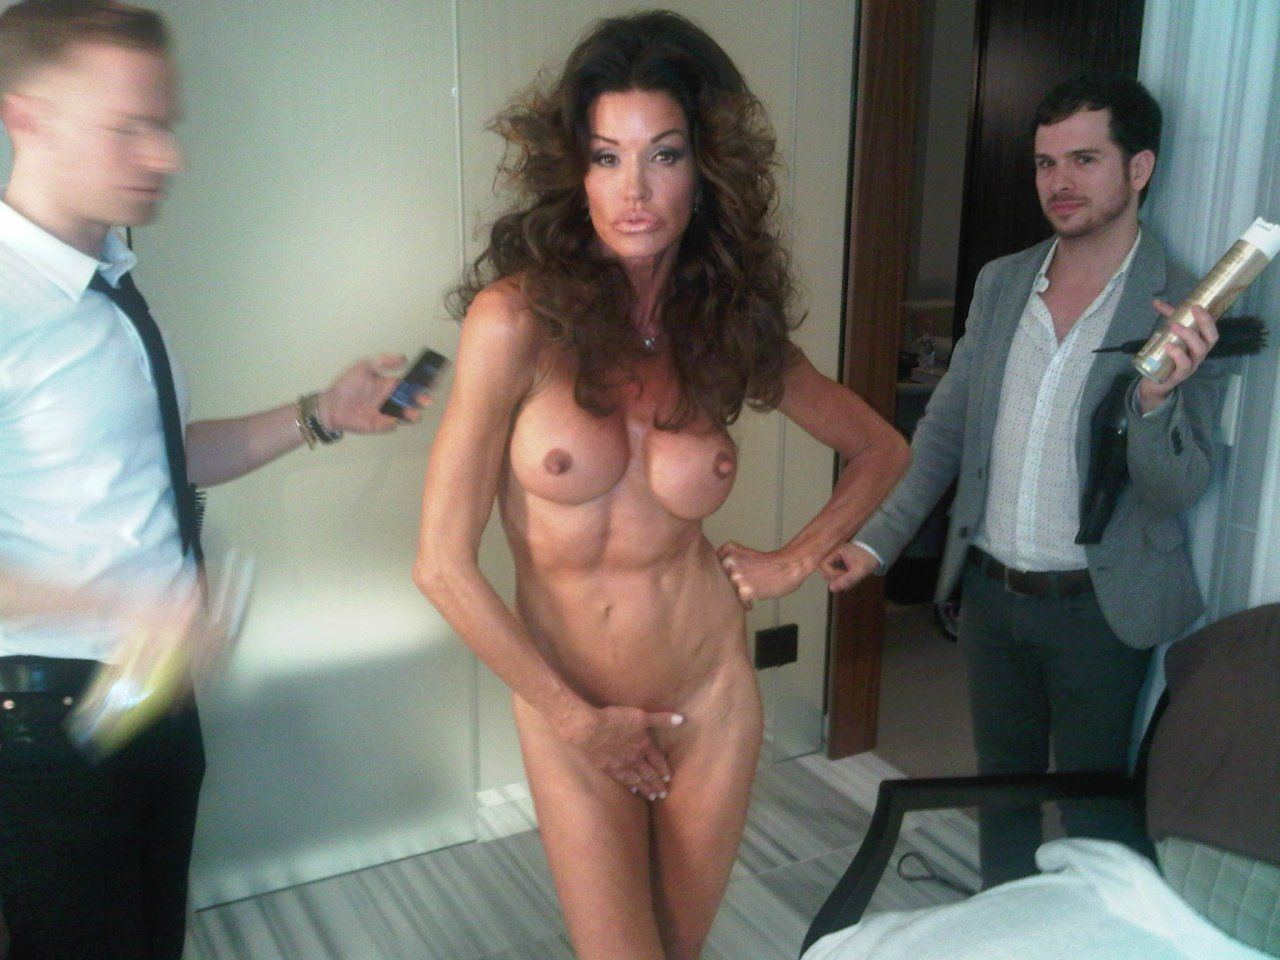 Angie Dickinson Porn janice dickinson naked pics . sex photo. comments: 2